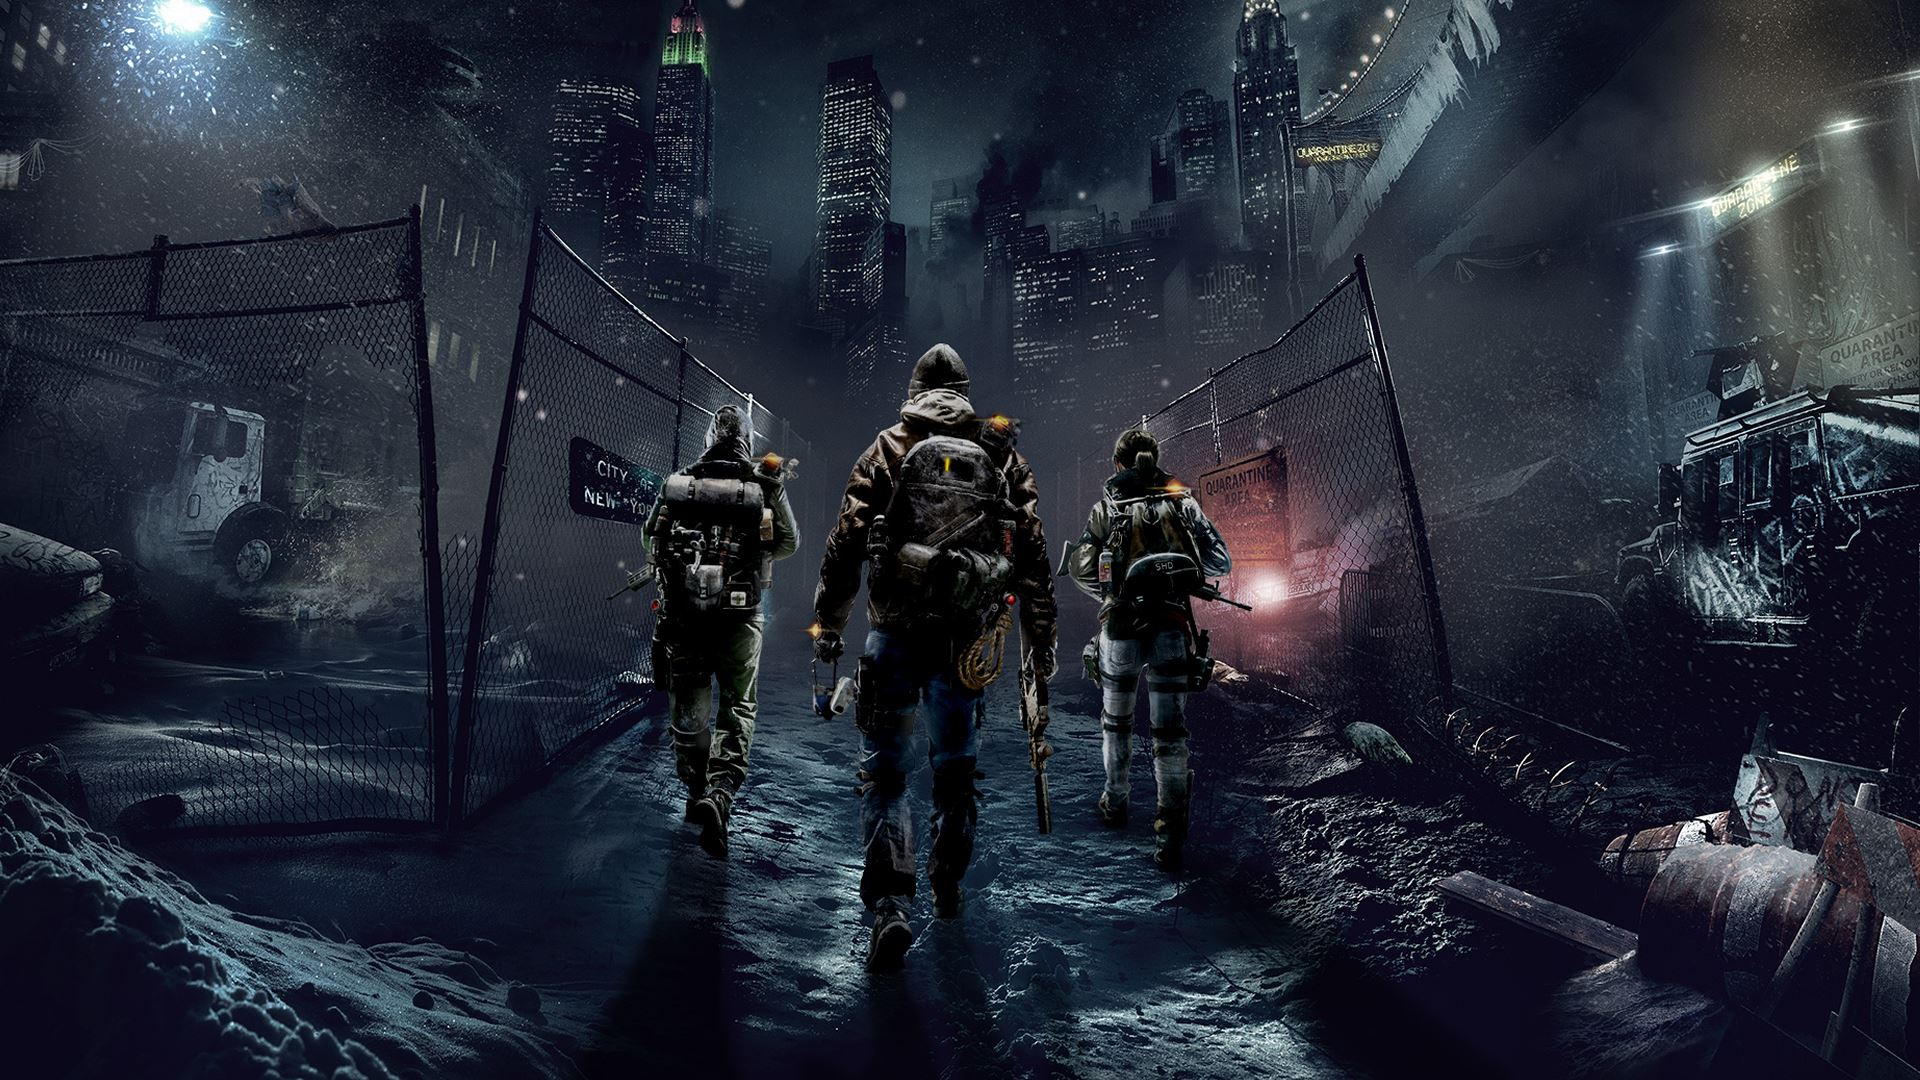 Tom Clancy's The Division Widescreen for desktop